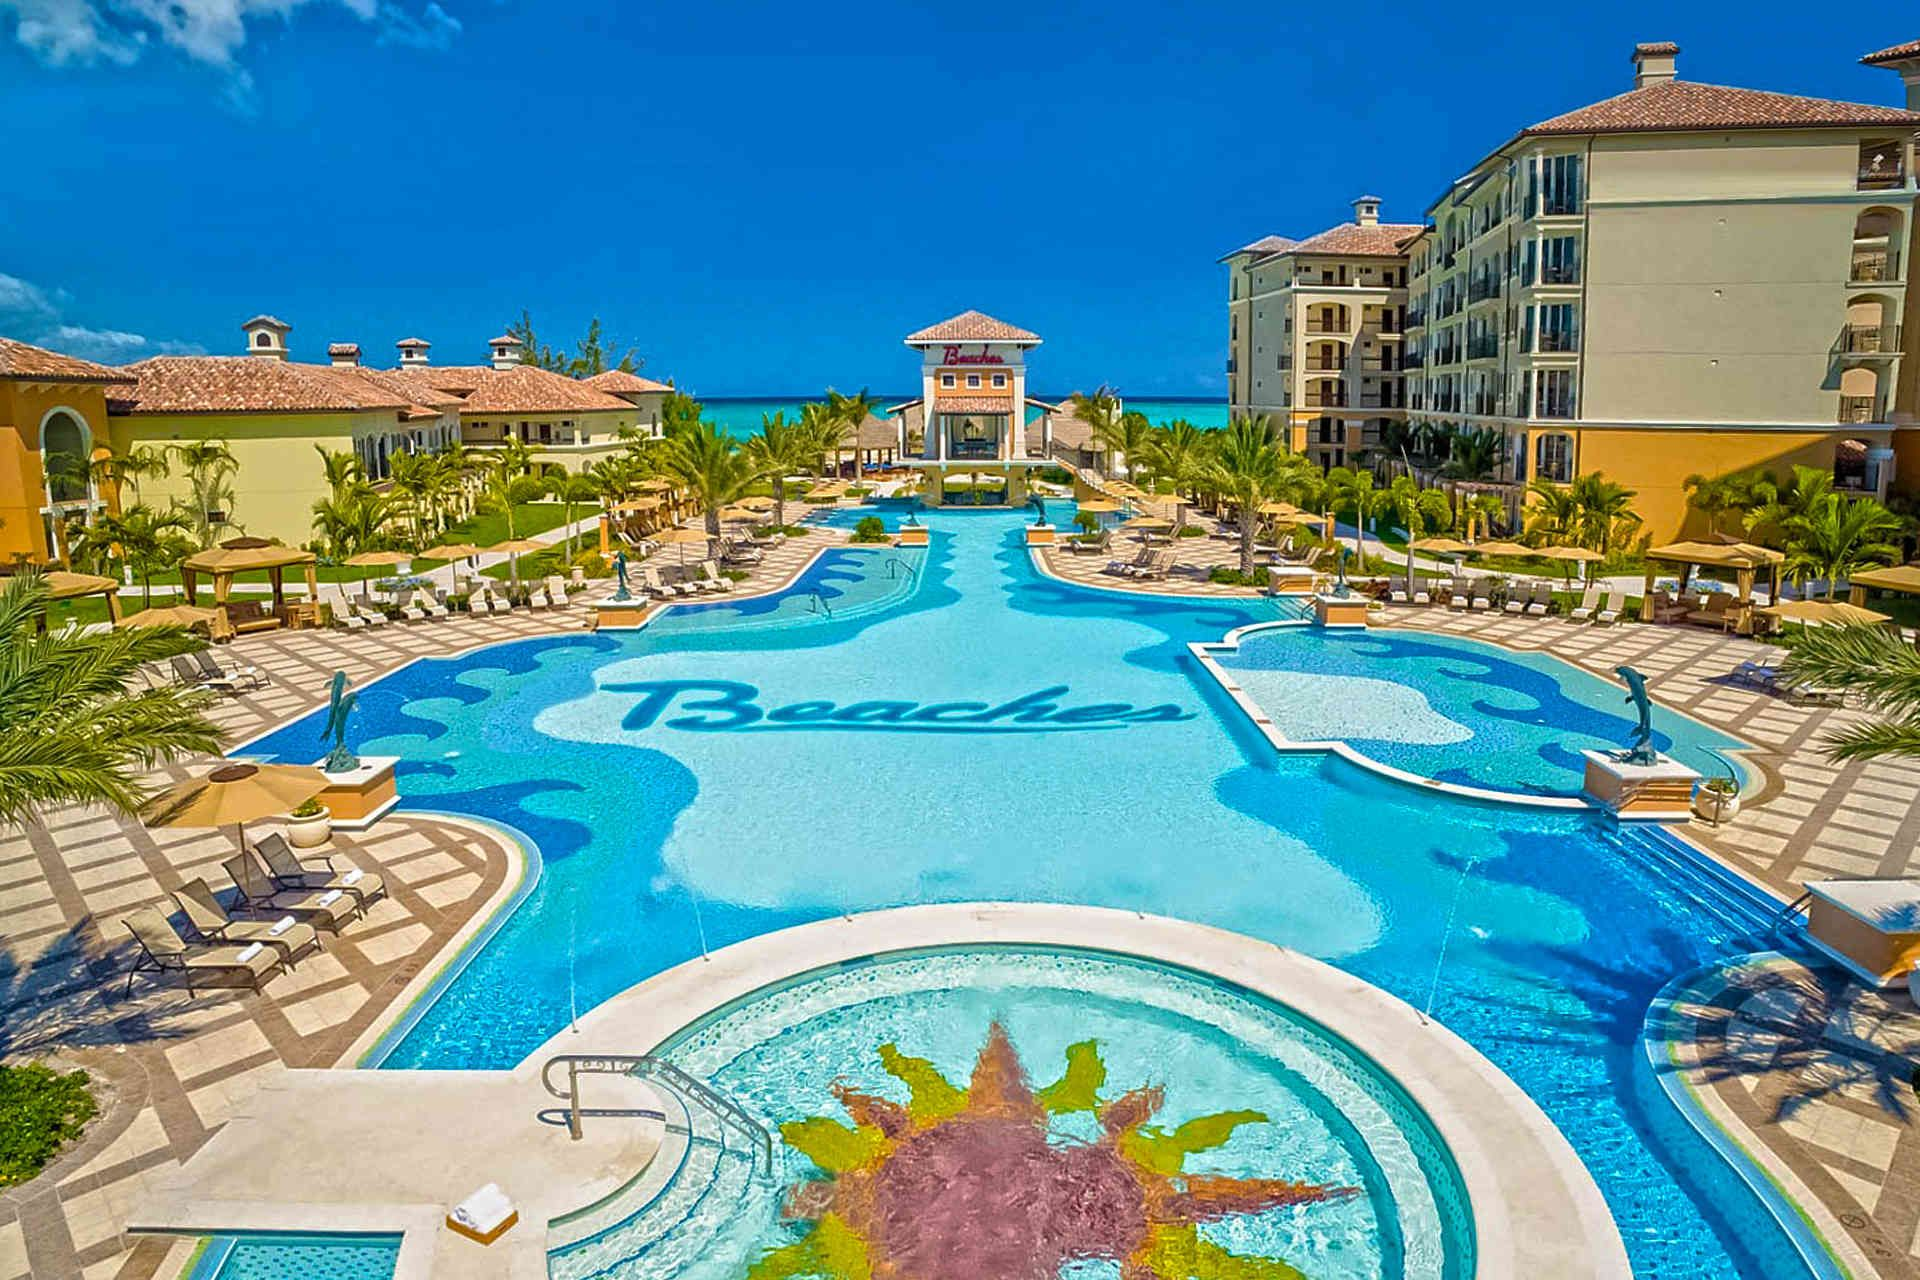 Top 10 All-Inclusive Resorts For Families (Caribbean